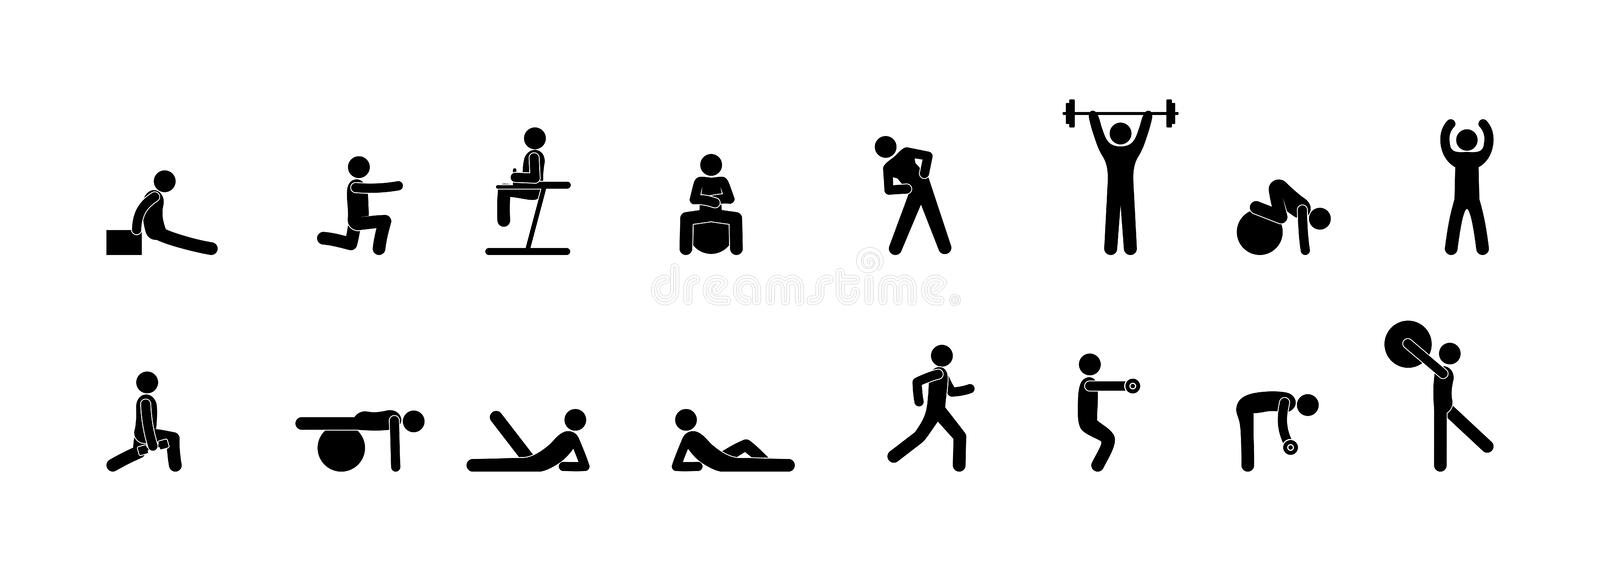 Icons of people in the gym, fitness, yoga and strength exercises, set of silhouette isolated. On white background, sports equipment and man illustration royalty free illustration